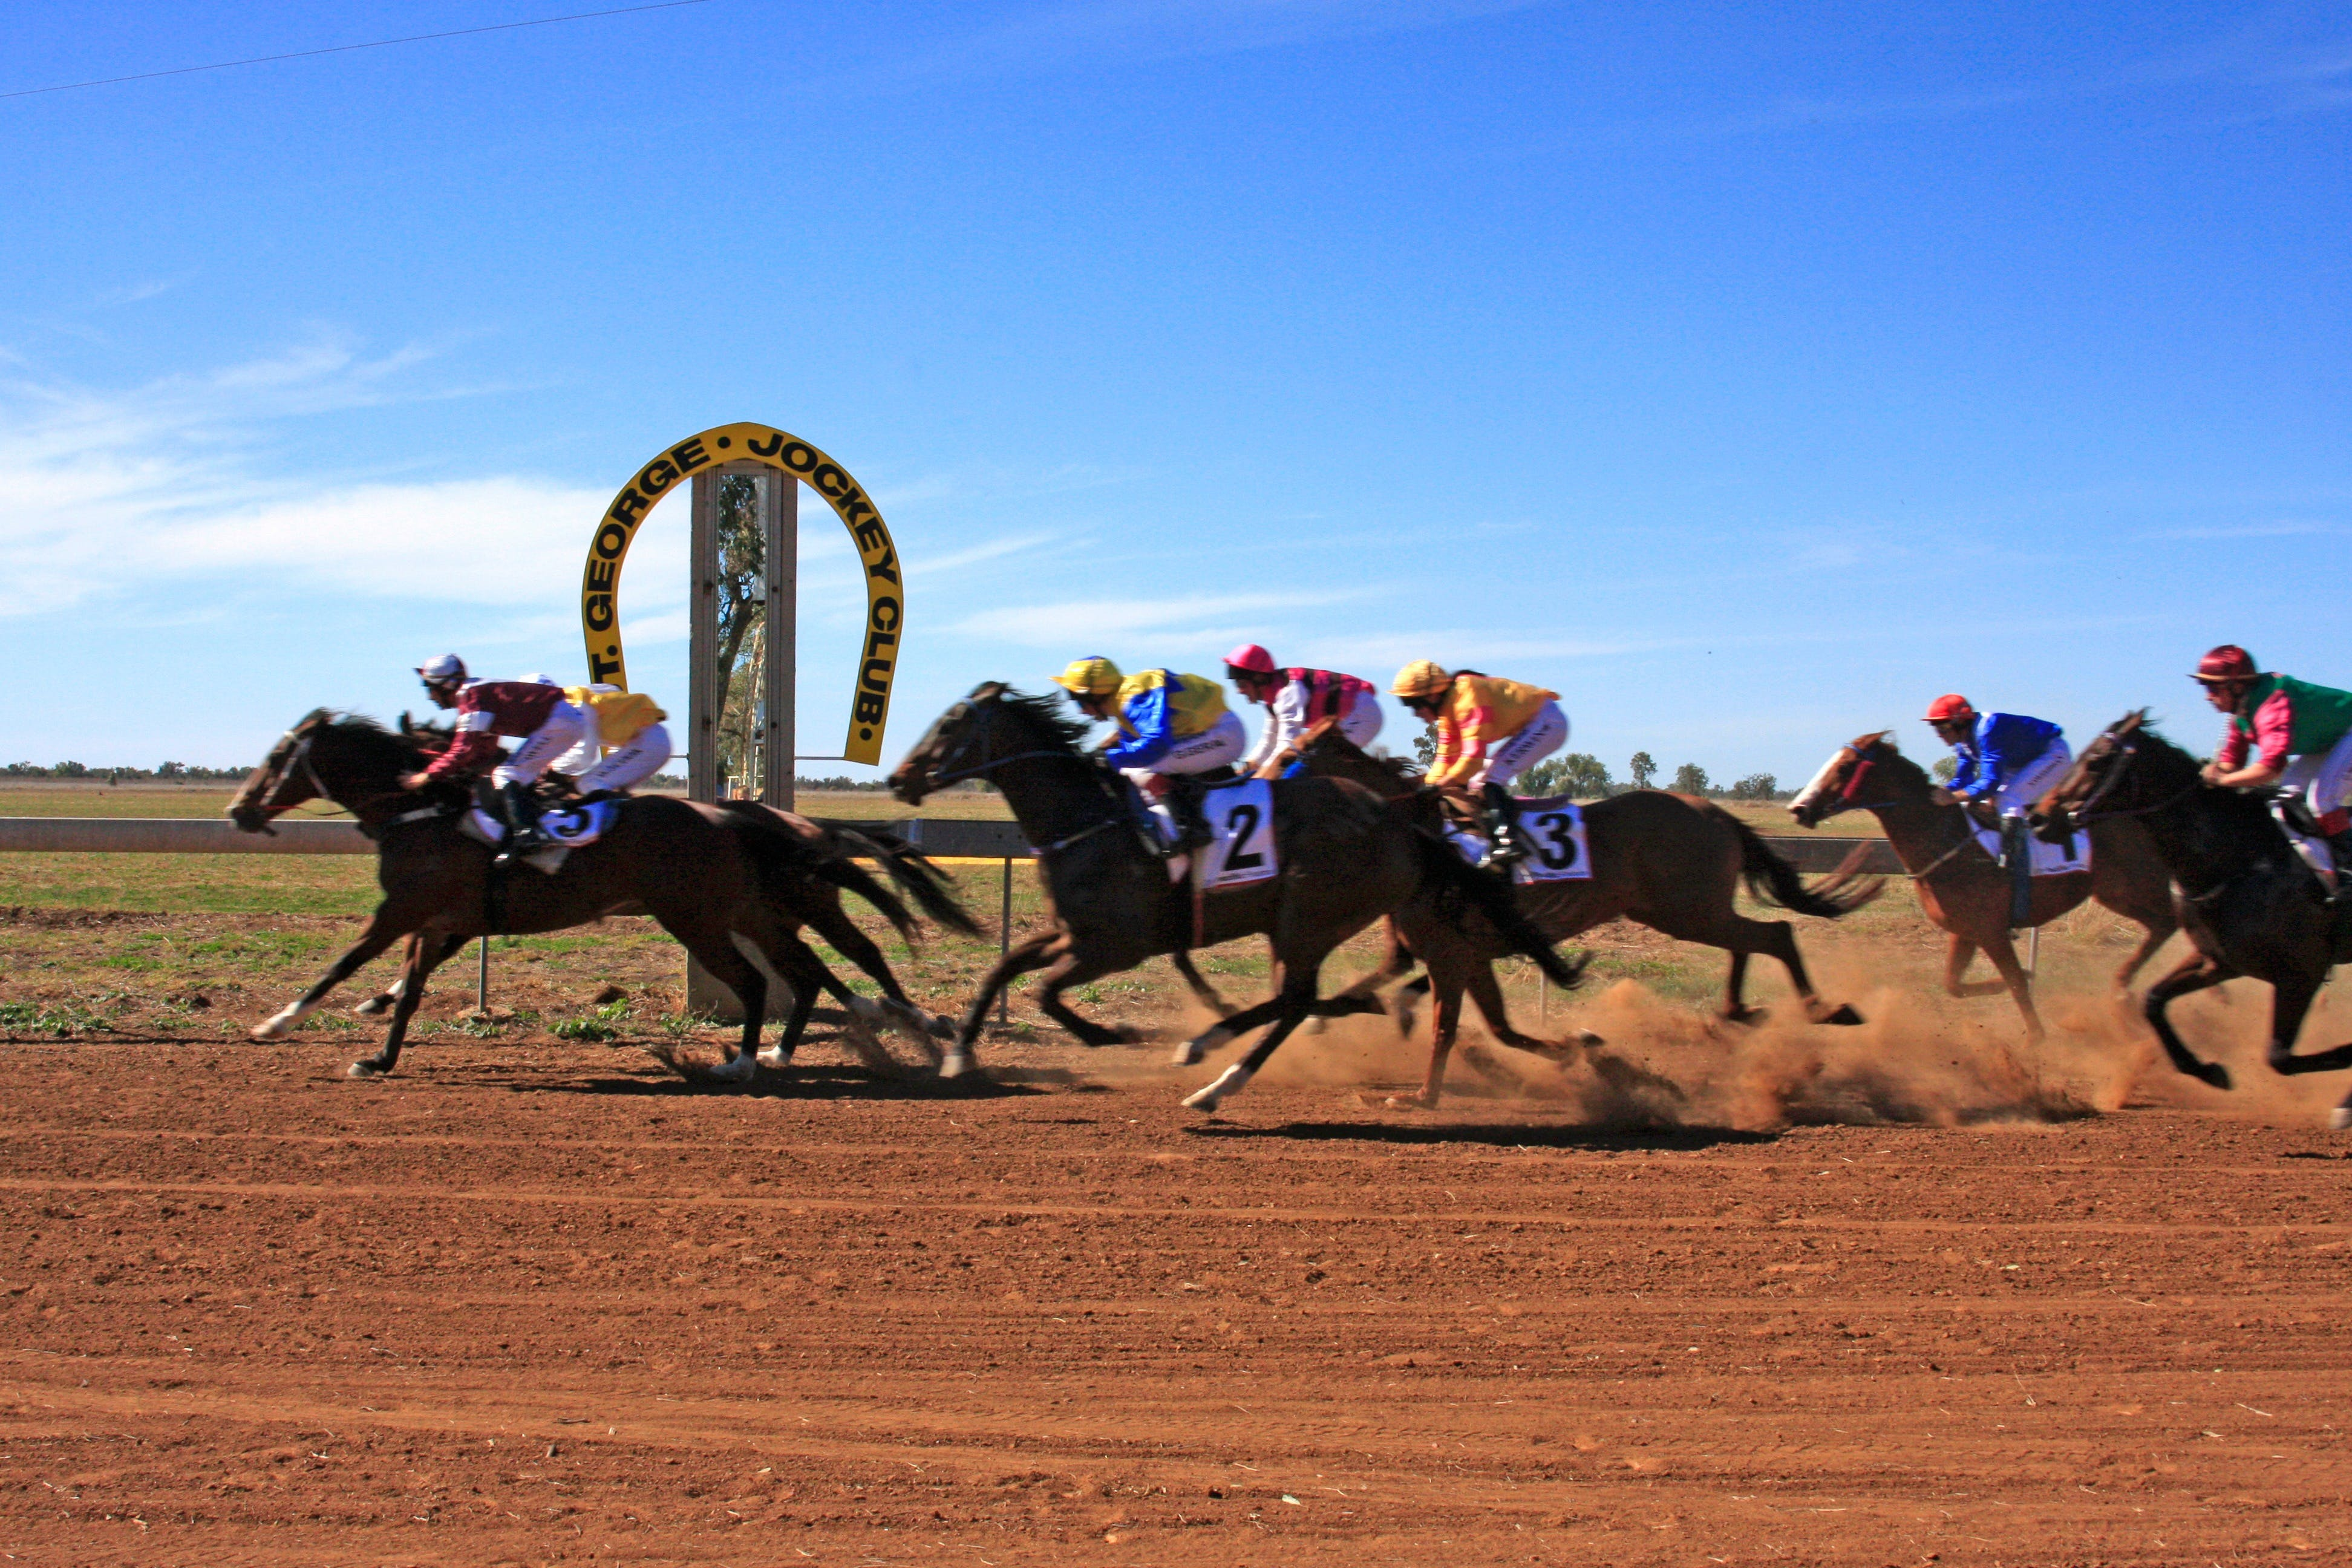 St George Cup Race Logo and Images